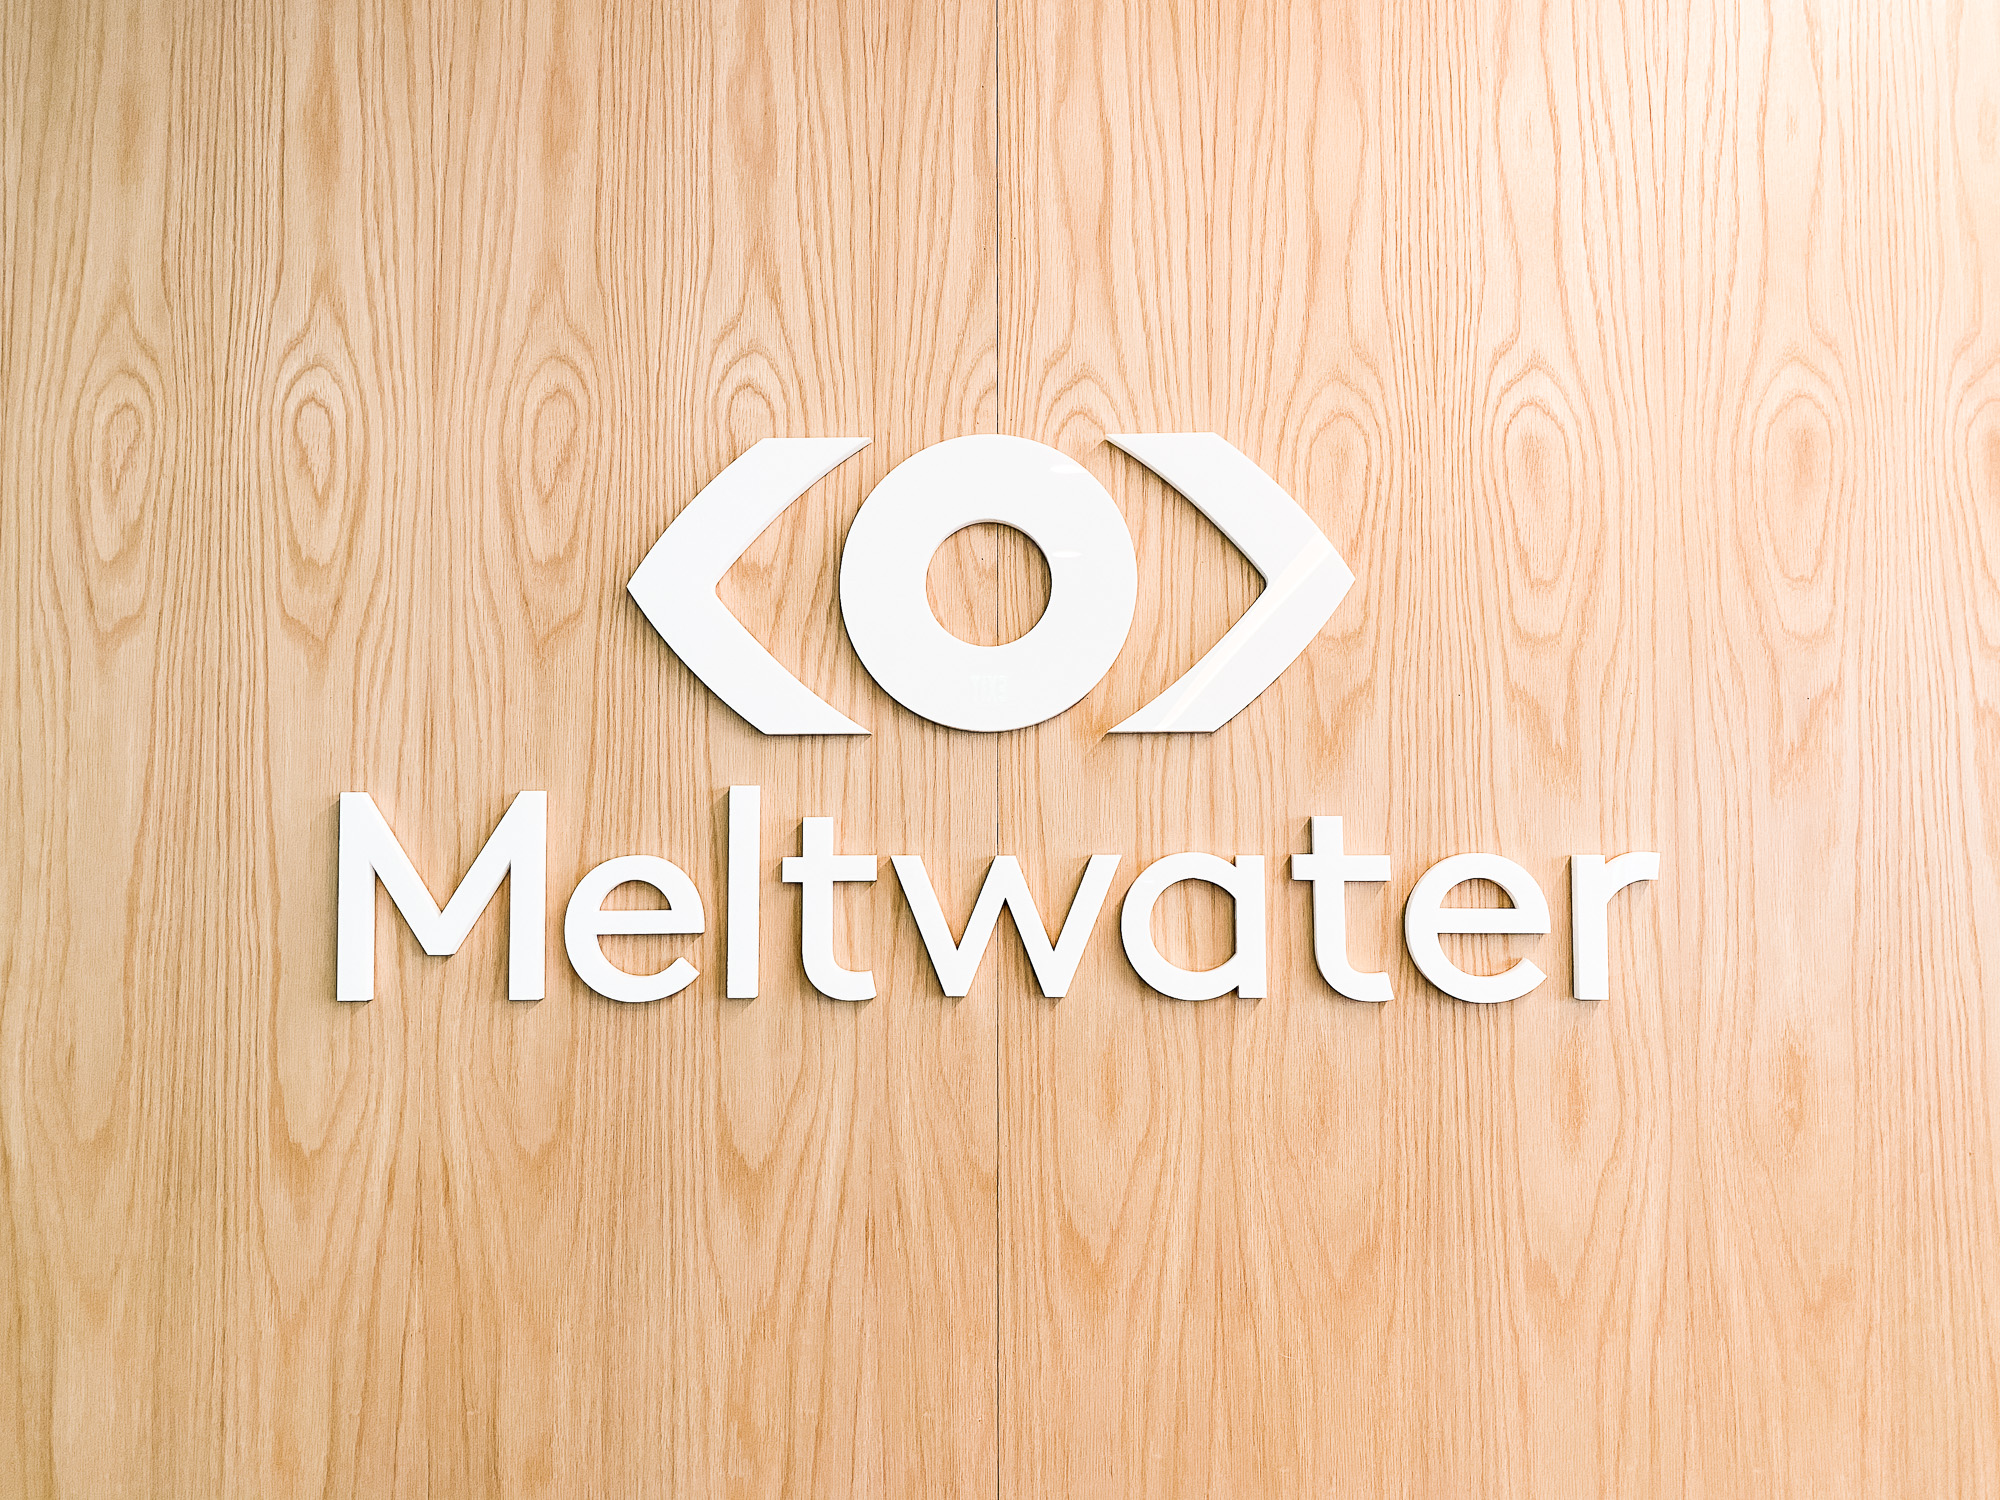 White logo on light wood add-on divider wall for the San Francisco office of Meltwater, a software as a service company that develops and markets media monitoring and business intelligence software.